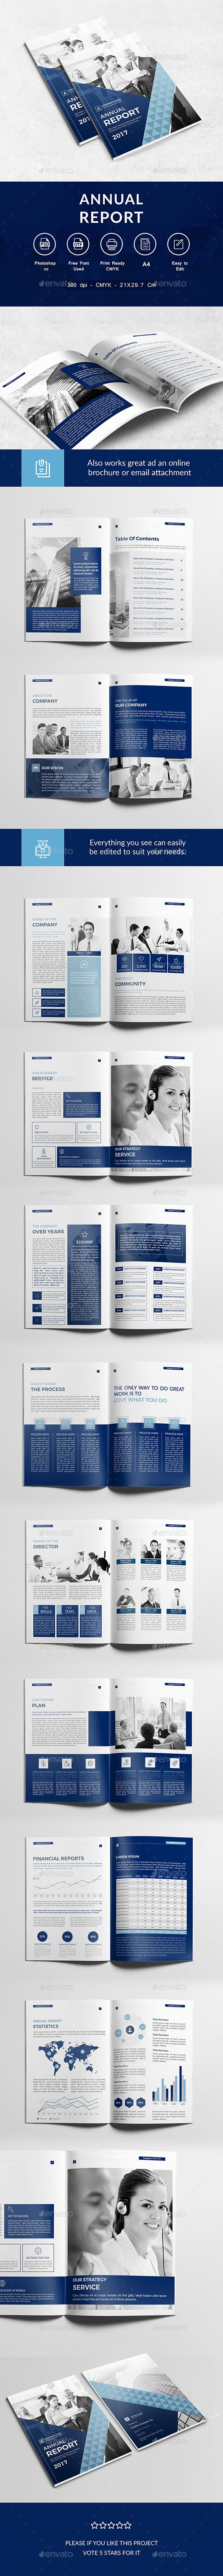 Best Annual Report Template Design Images On